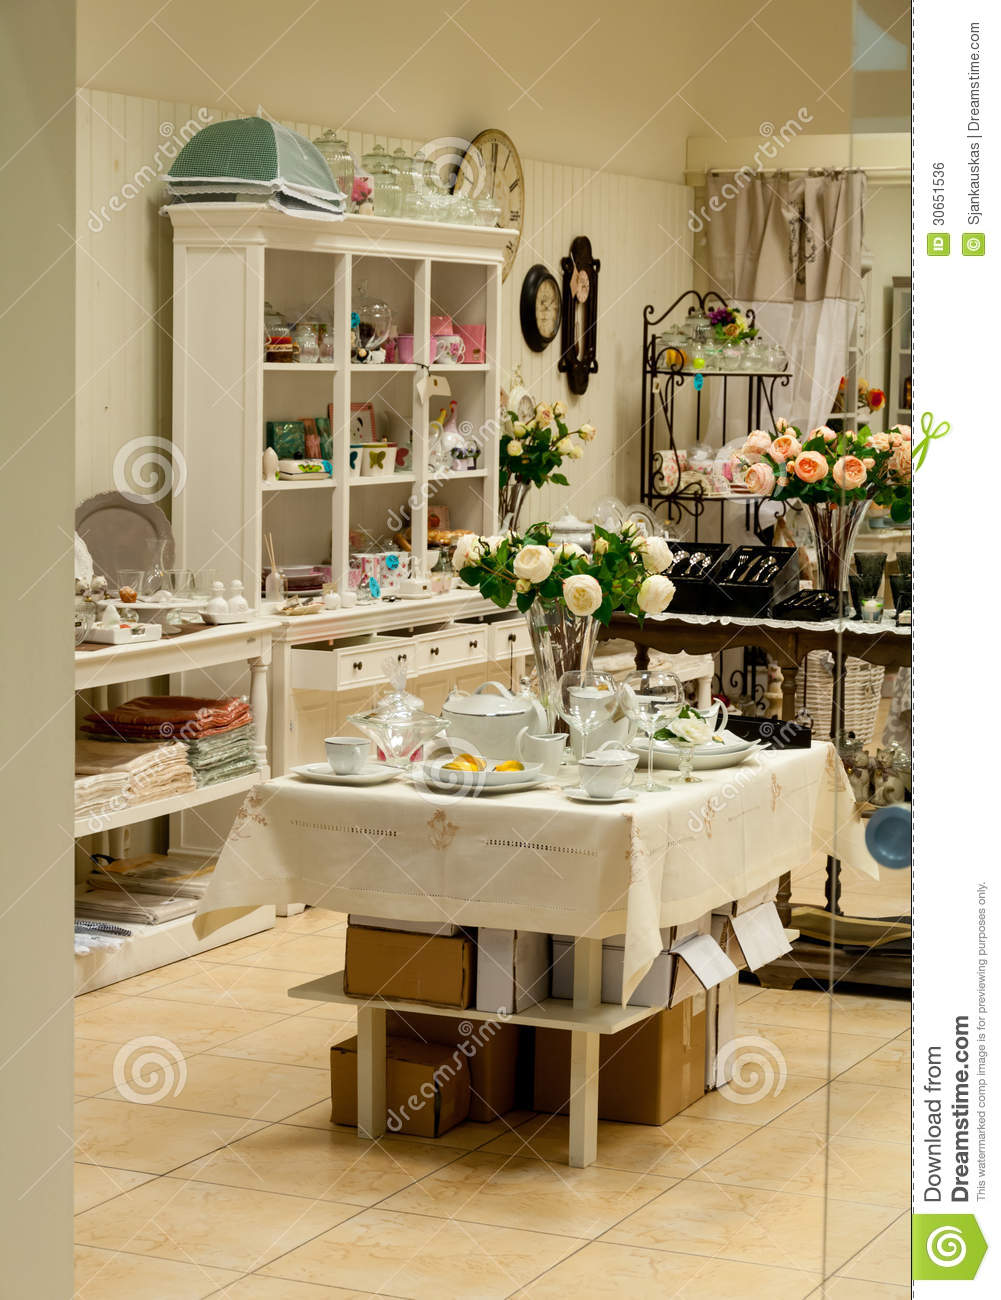 Home decor and dishes shop royalty free stock image for In home decor store